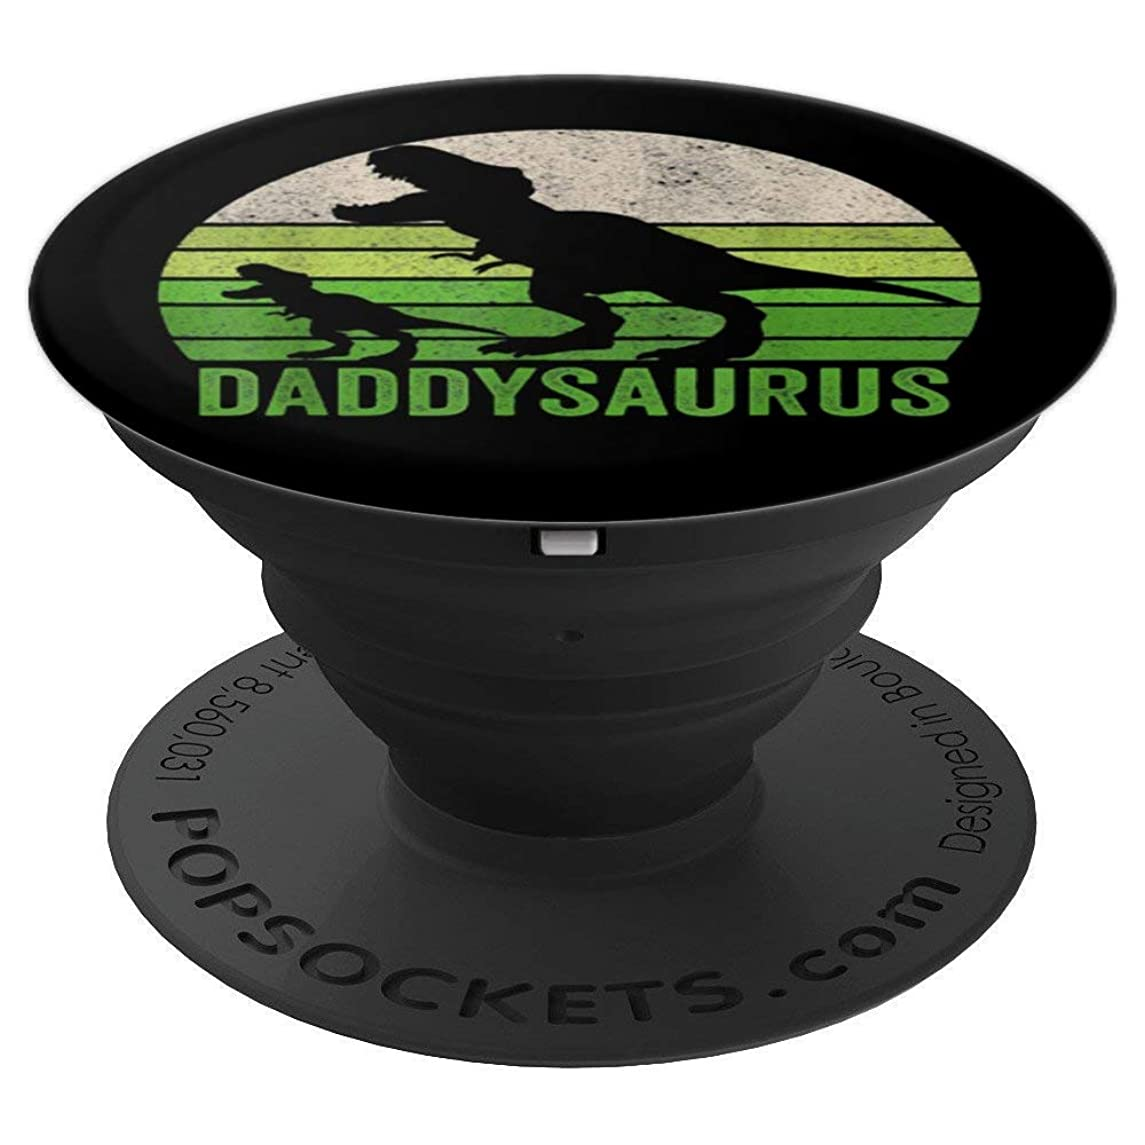 Funny Daddy Dinosaur T Shirt, Daddysaurus Fathers Day Shirts - PopSockets Grip and Stand for Phones and Tablets